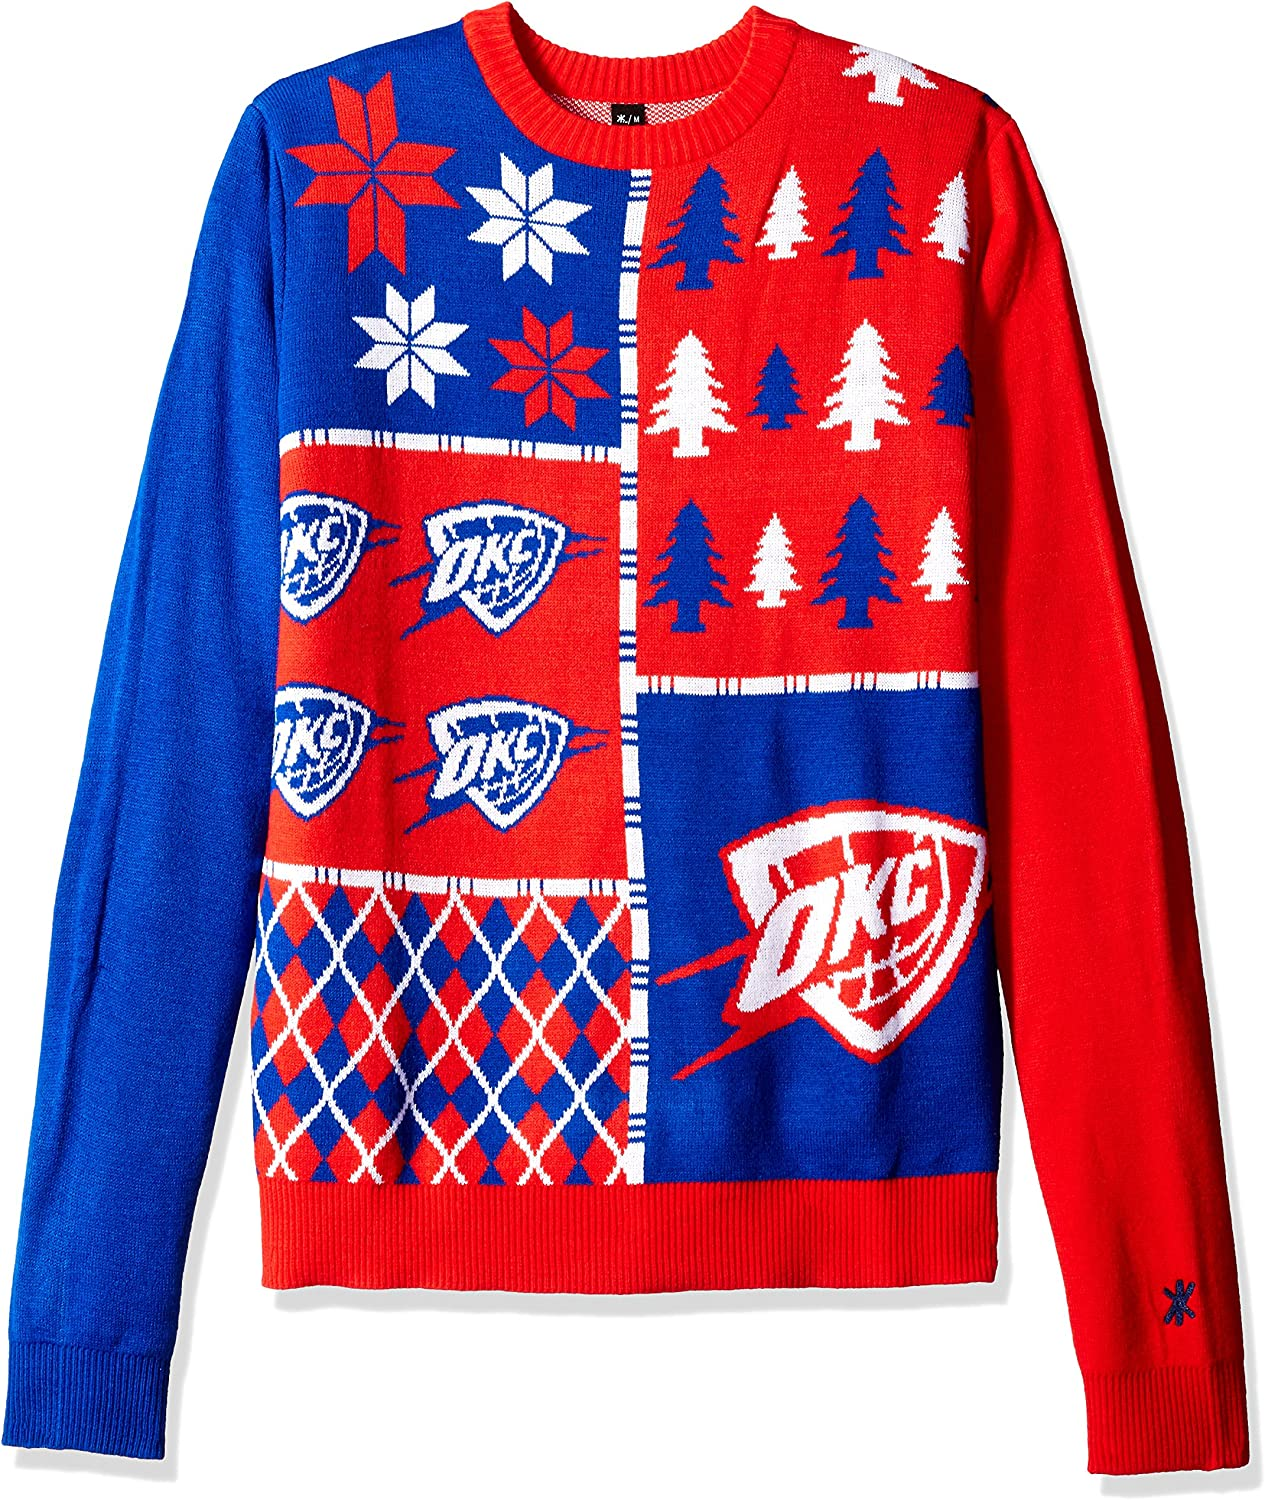 Popular brand in the world Oklahoma City Thunder Cheap sale Busy Ugly Block Sweater Large